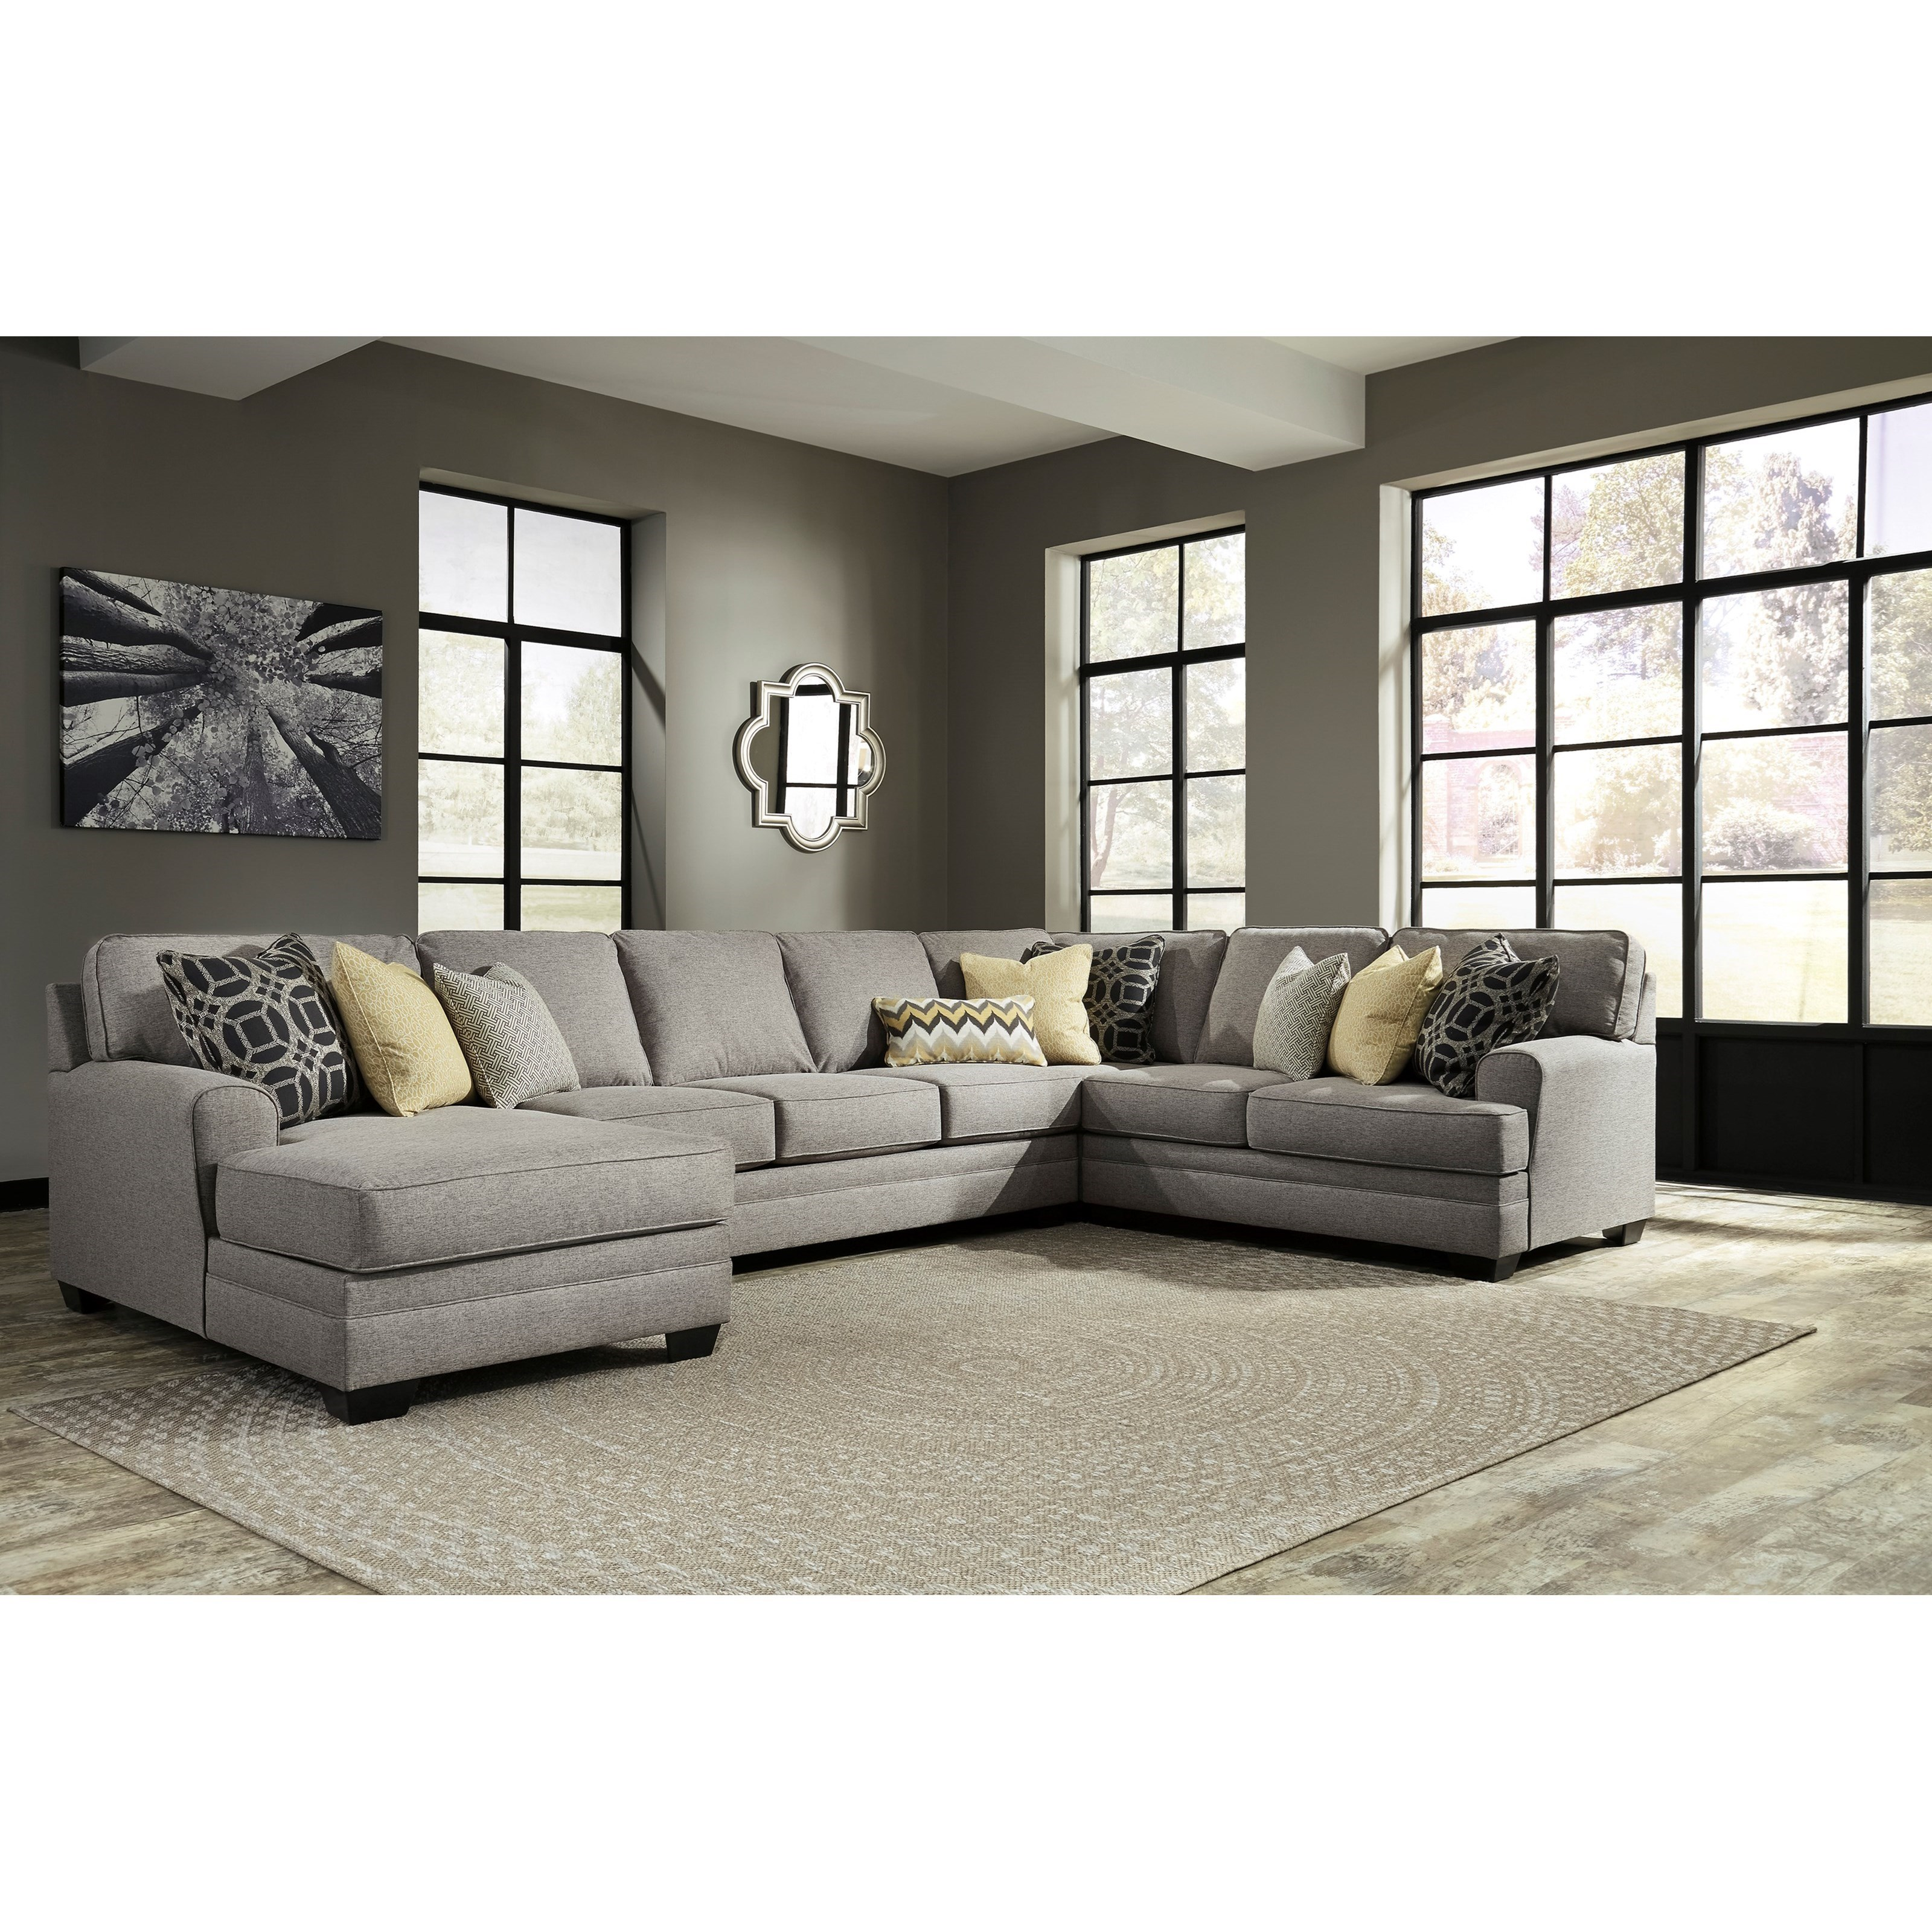 Benchcraft by Ashley Cresson4-Piece Sectional with Chaise & Armless Sofa